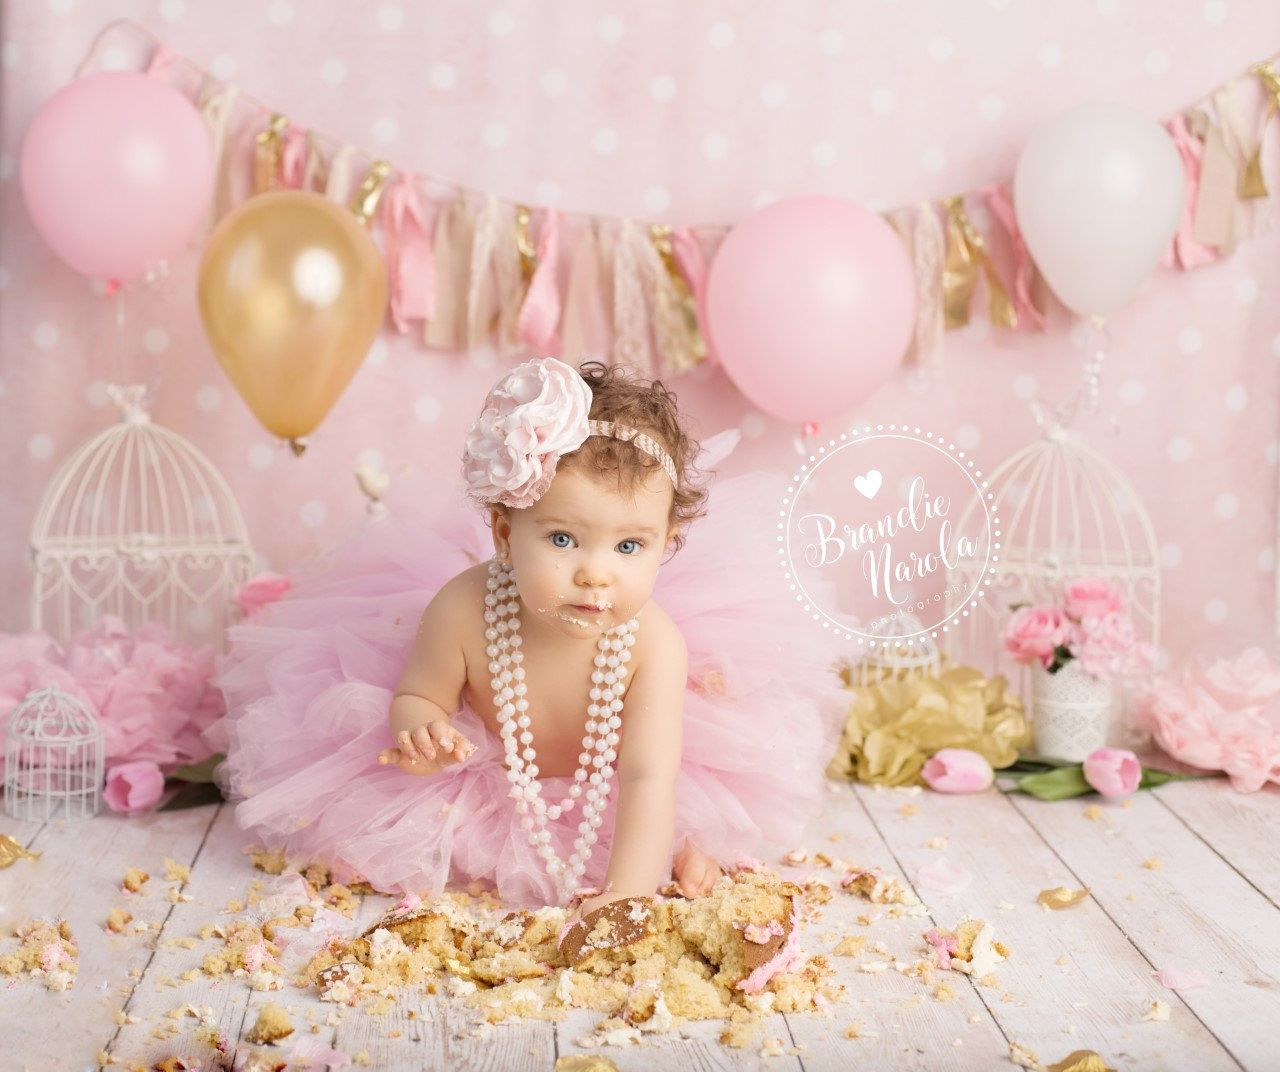 Cake Smash Outfit Girls First Birthday Outfit Cake Smash Cake Smash Outfit Girl Smash Cake Girl Birthday Cake Smash